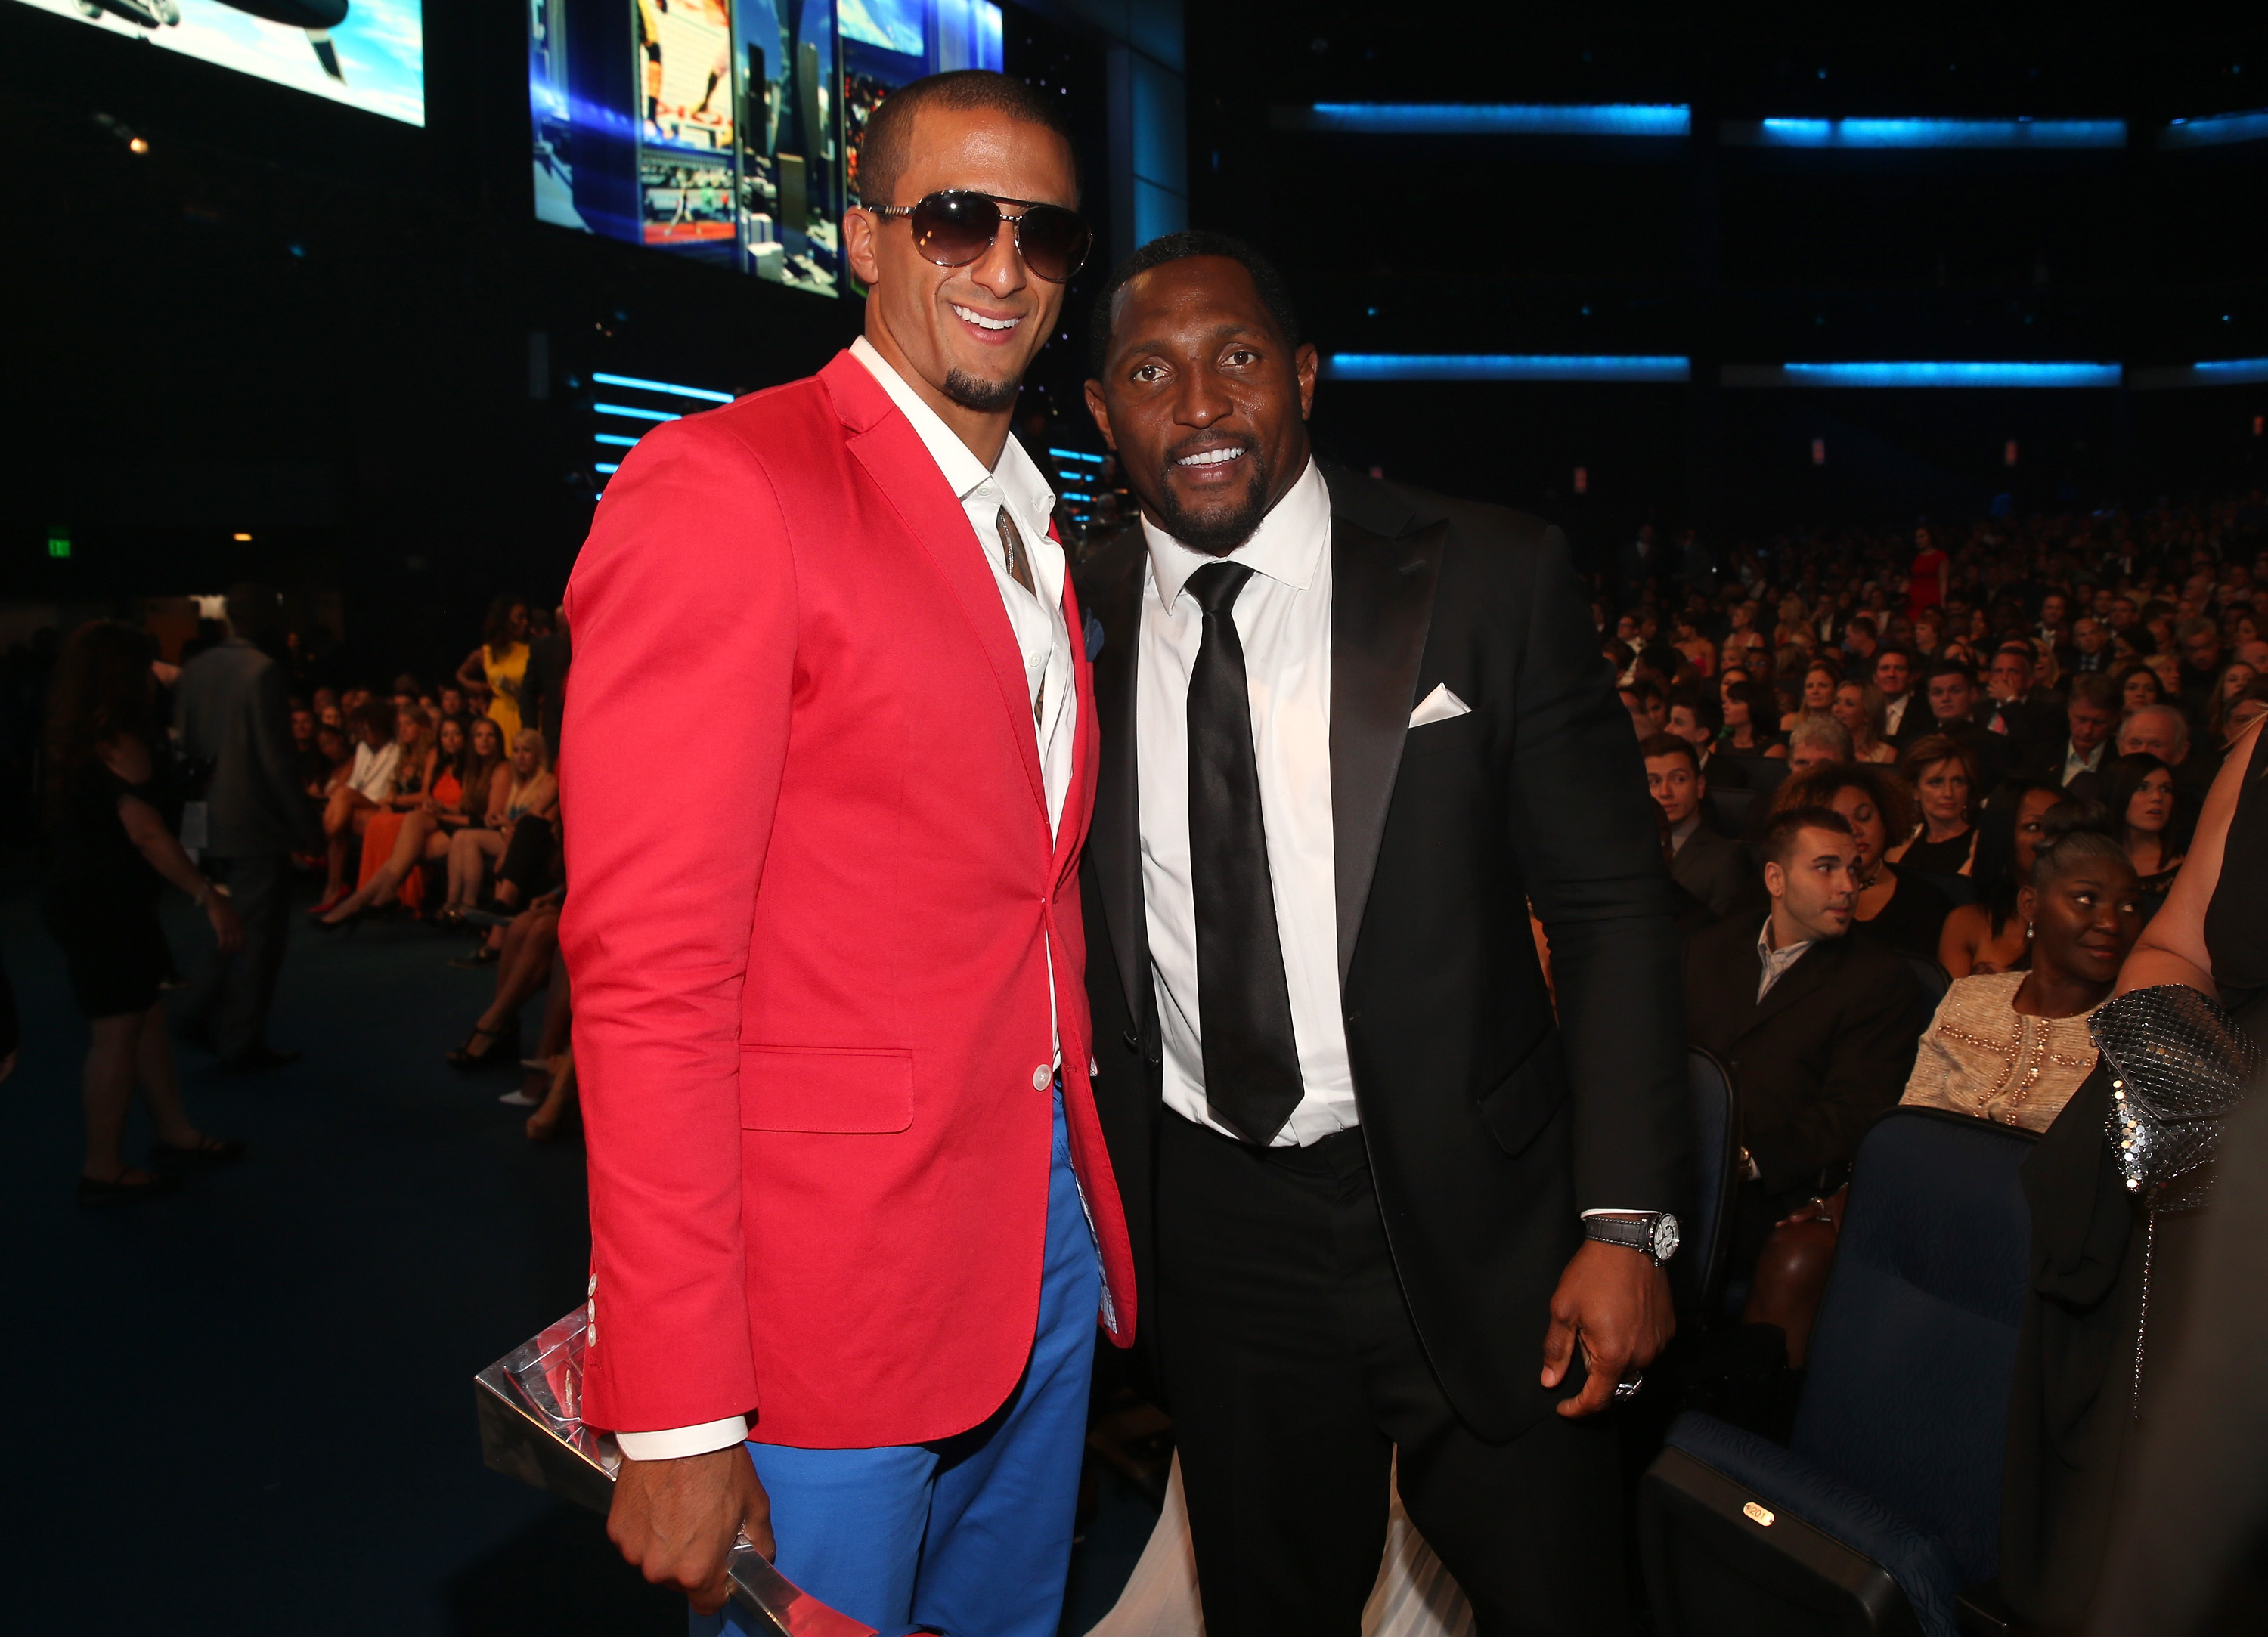 The 2013 ESPY Awards - Audience